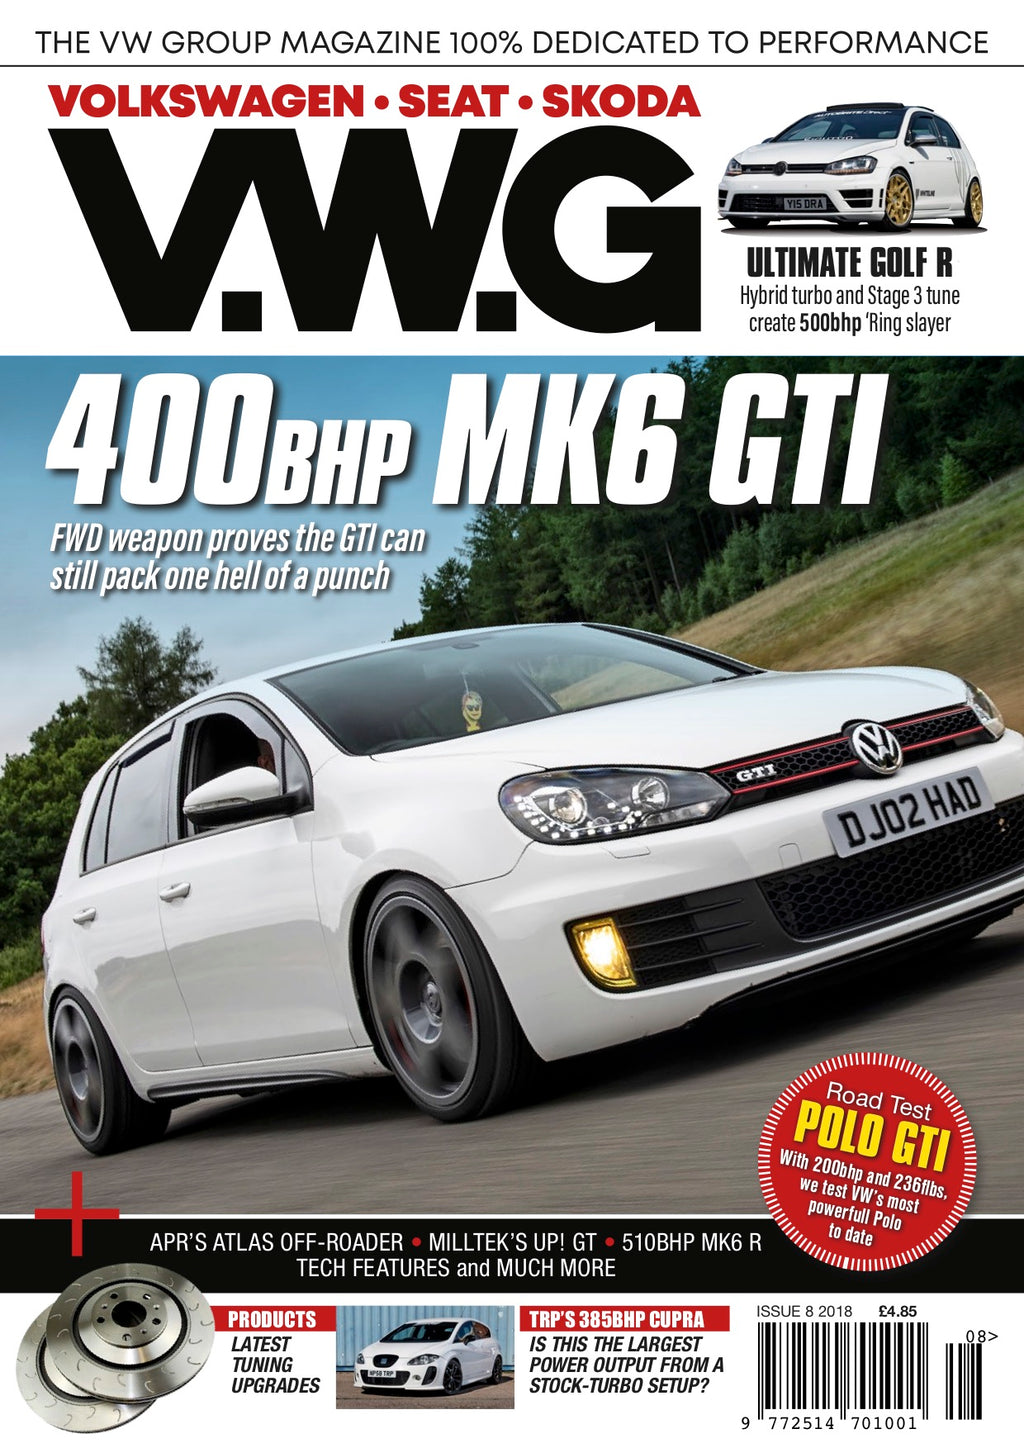 VWG Issue 8 (FREE UK POST)